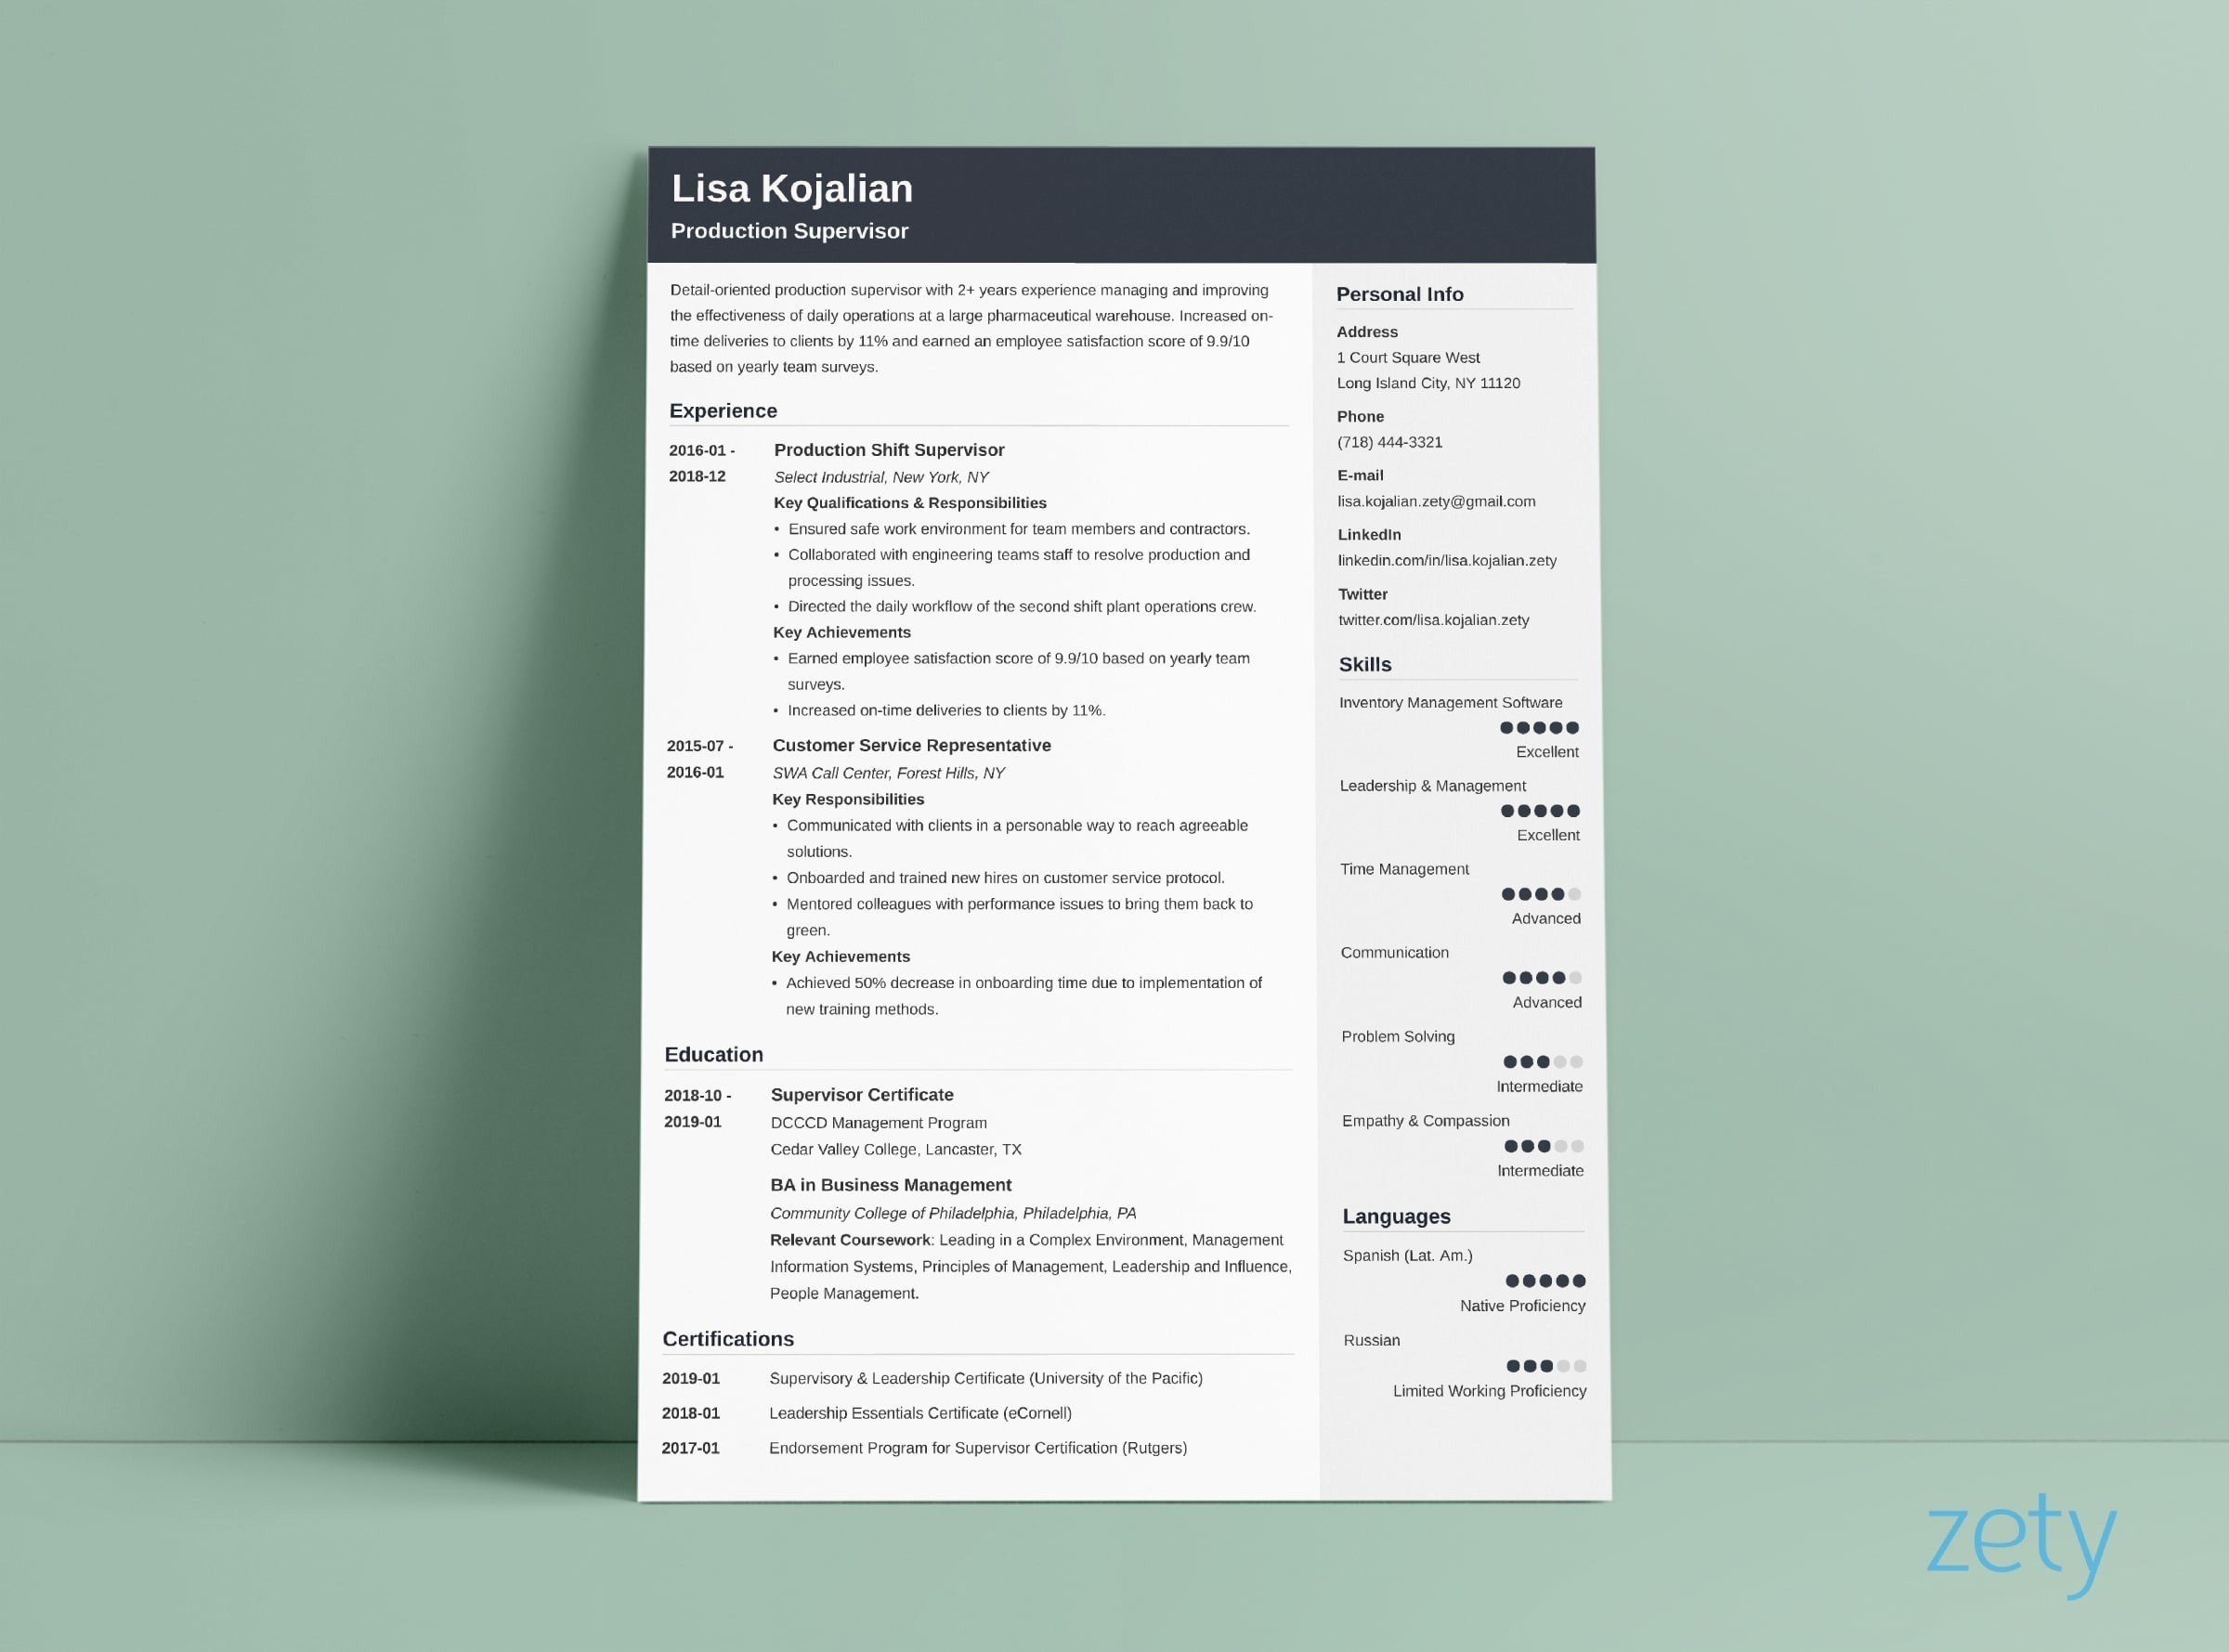 student resume cv templates to now eye catching resumes free cubic alex conroy template Resume Eye Catching Resumes Templates Free